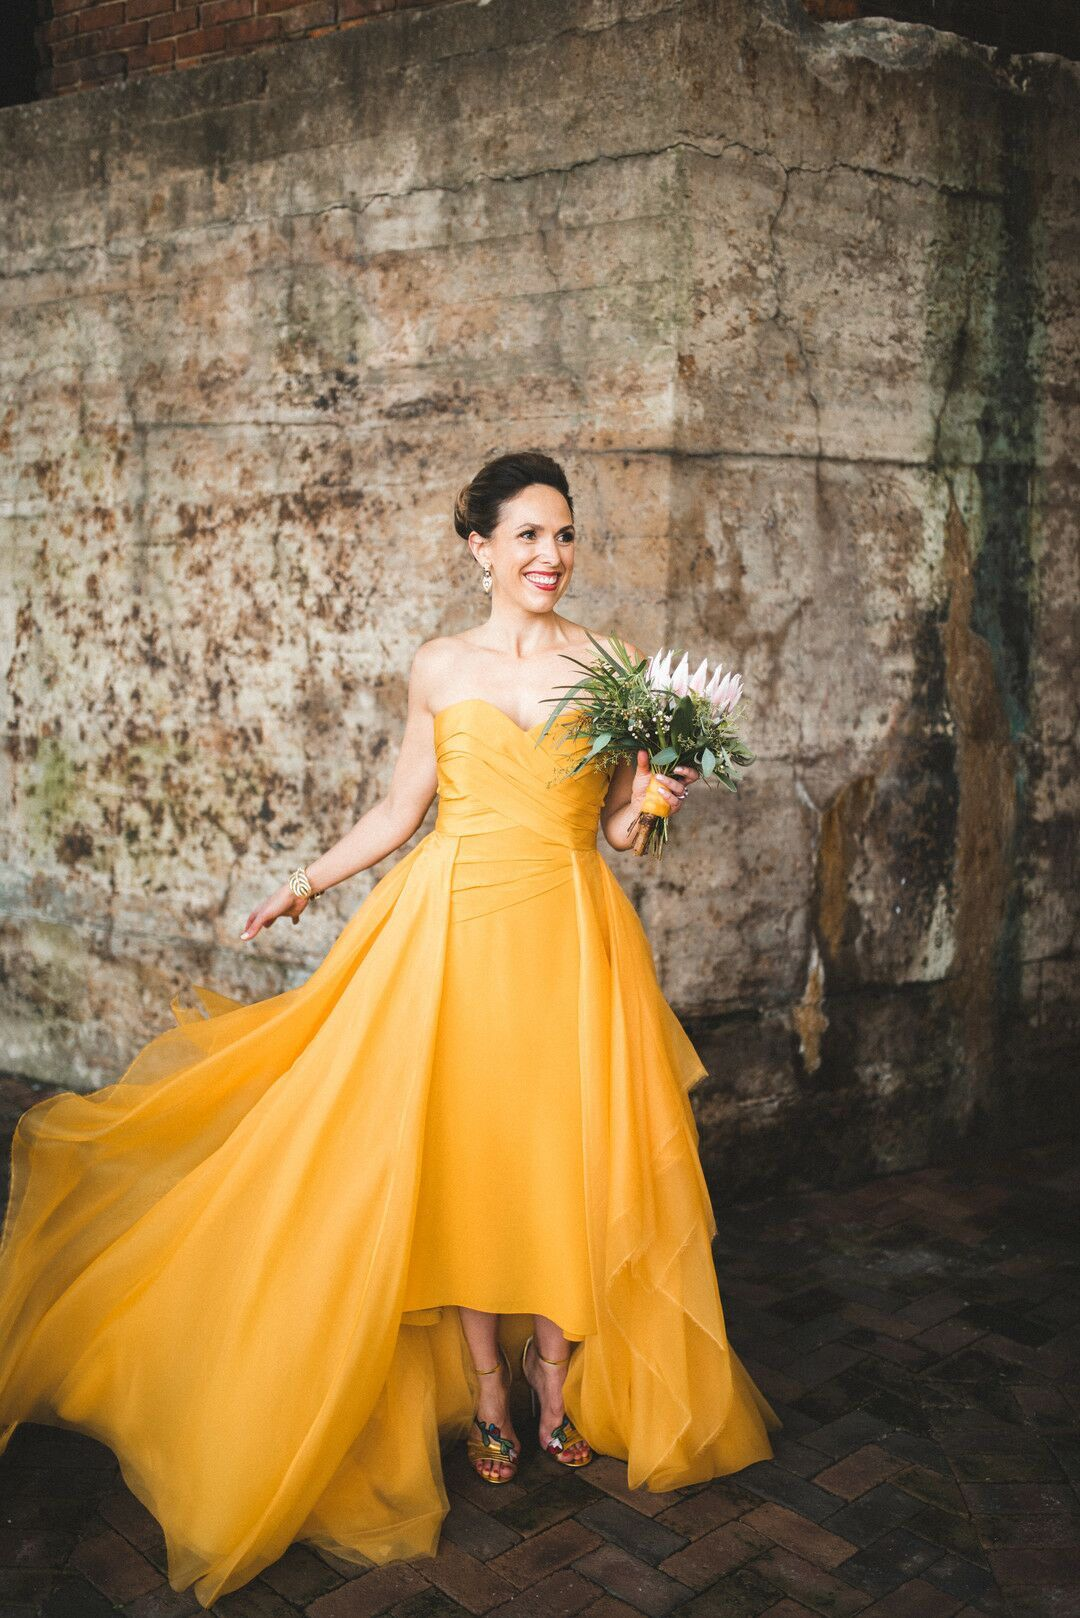 Wedding Dresses image by The Knot in 2020 Wedding